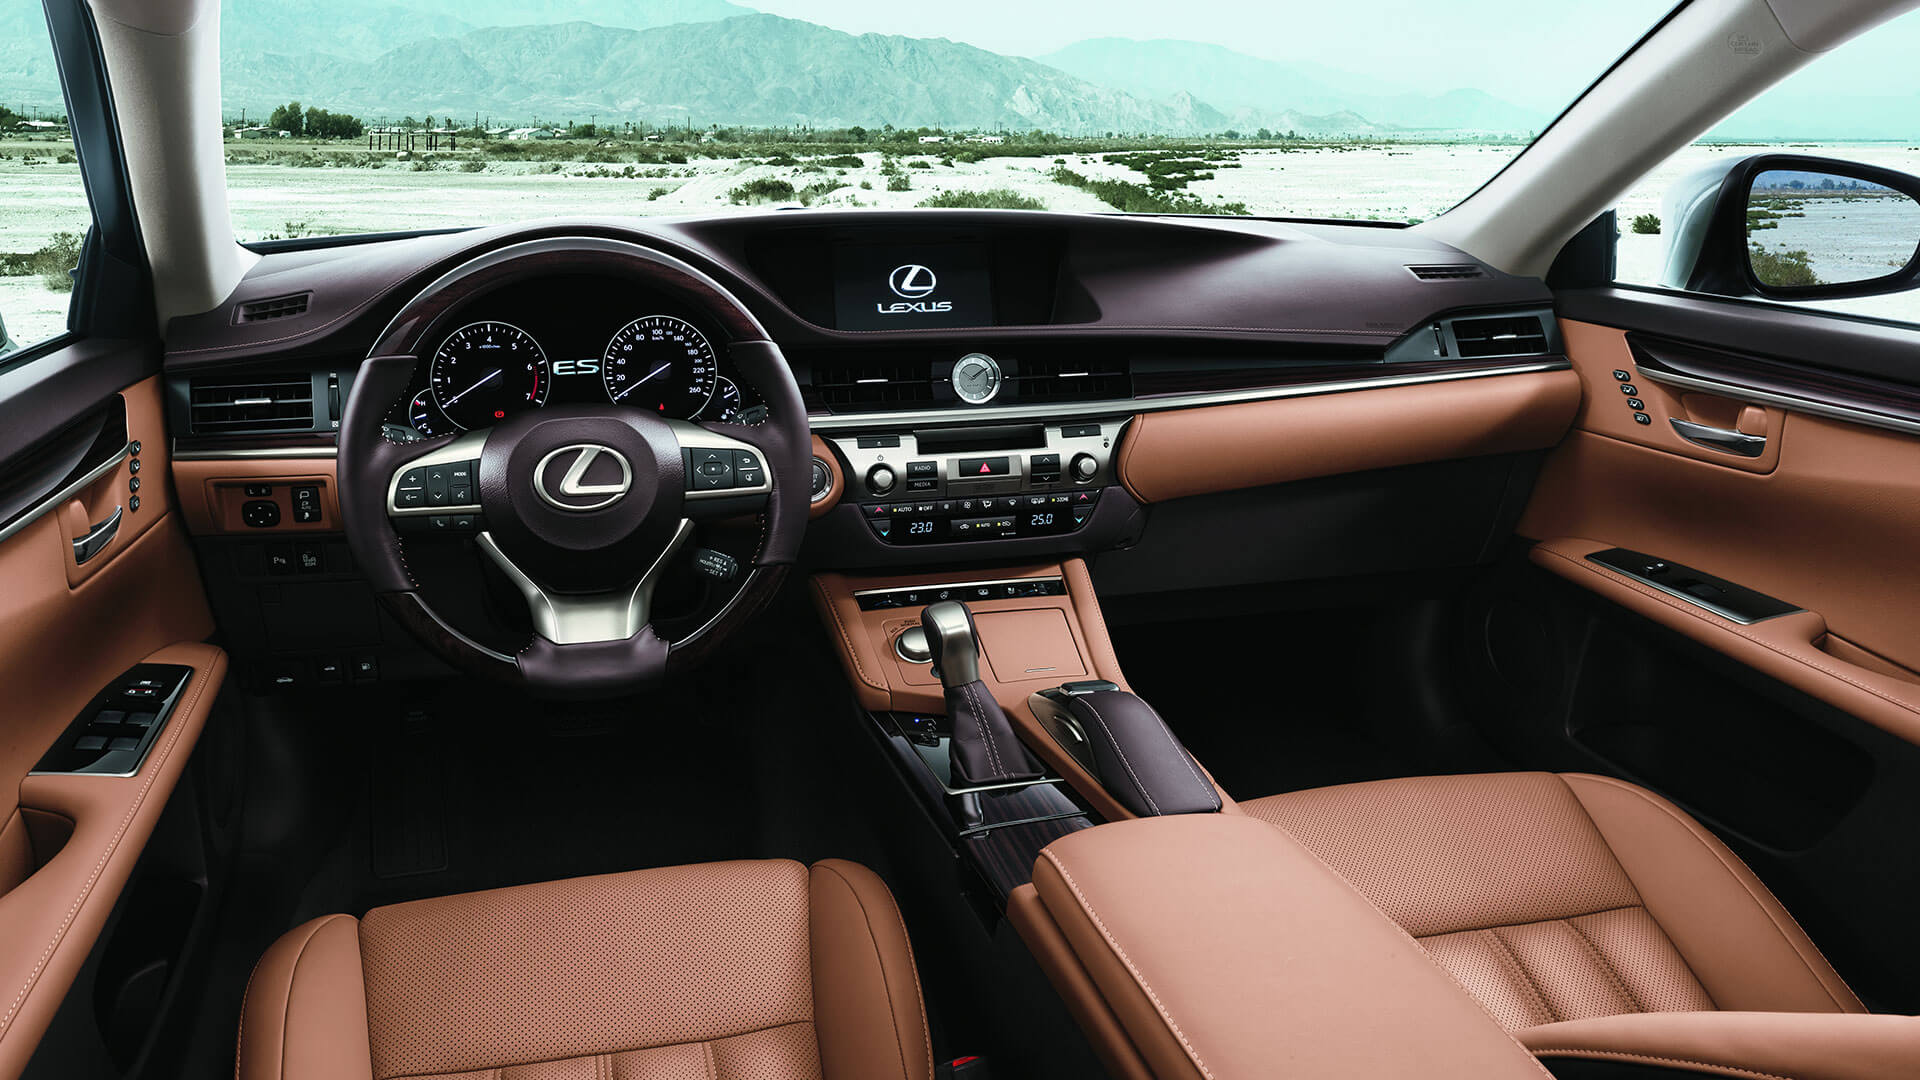 2017 lexus es gallery 020 interior